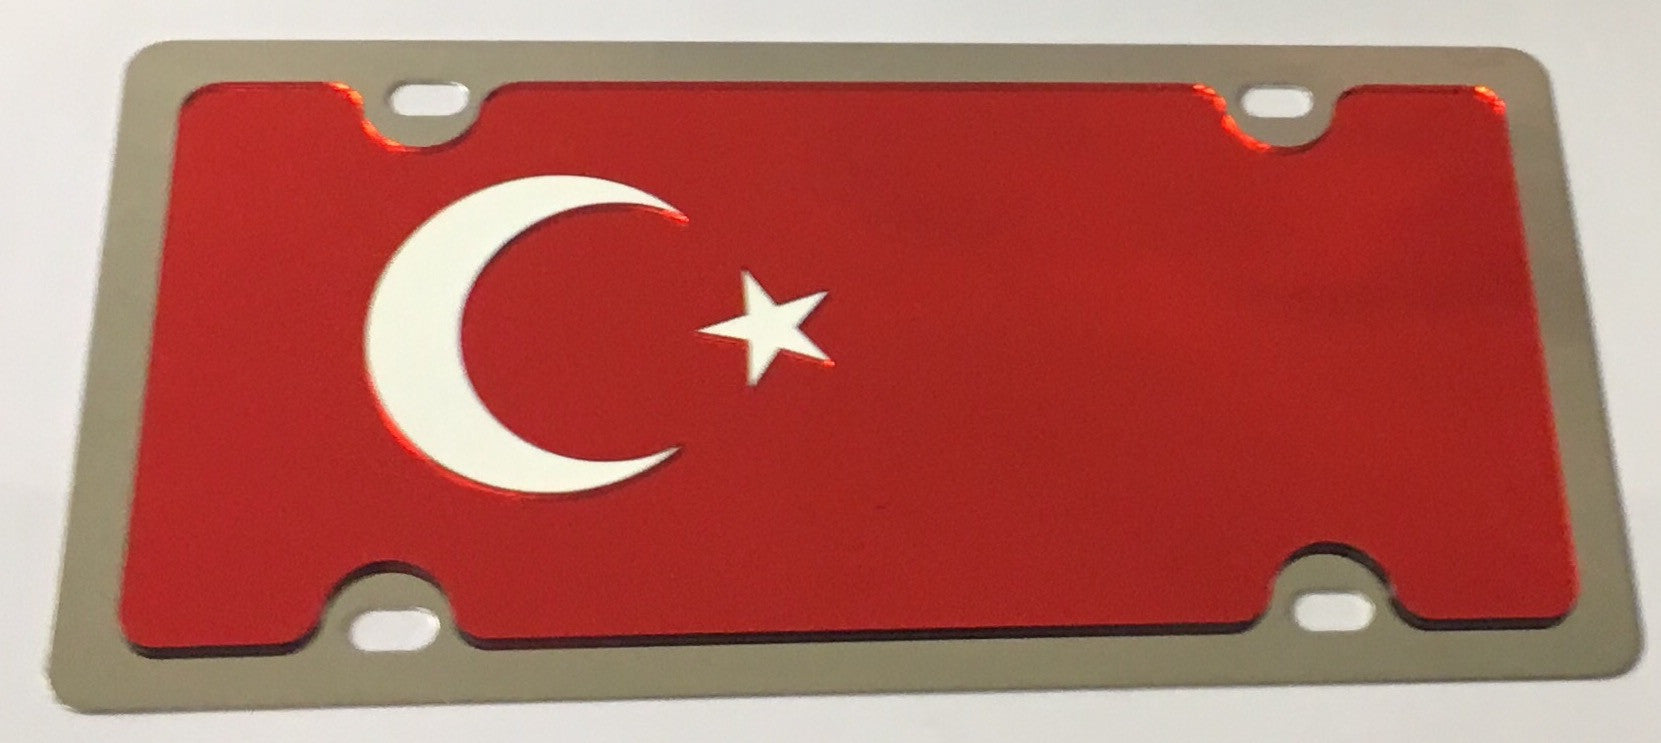 Turkey Flag Stainless Steel License Plate